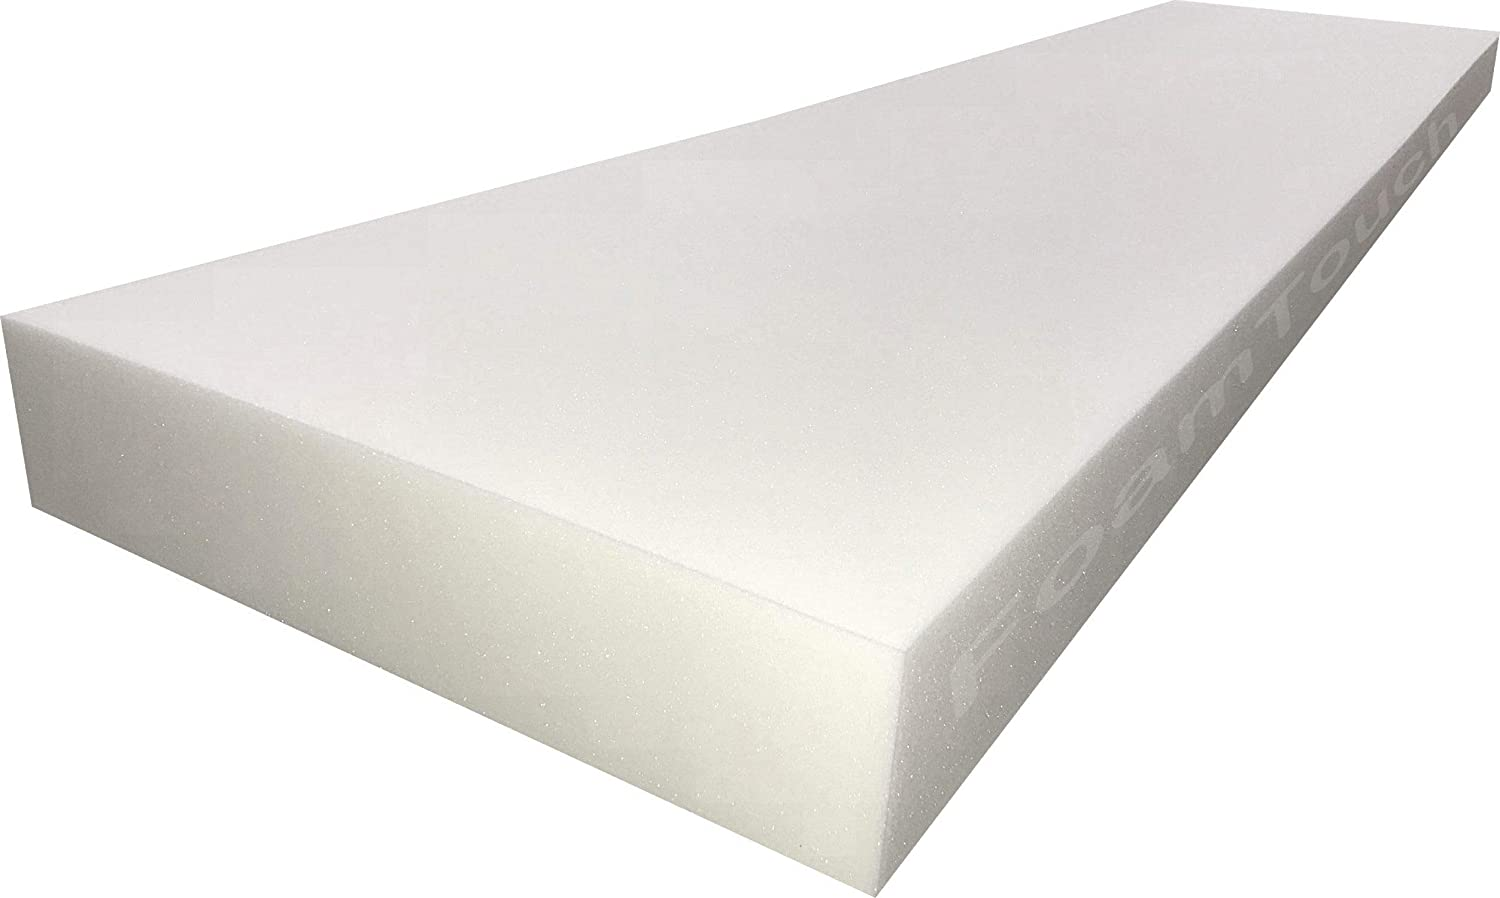 FoamTouch Upholstery Foam Cushion, 2'' L x 30'' W x 72'' H, High Density